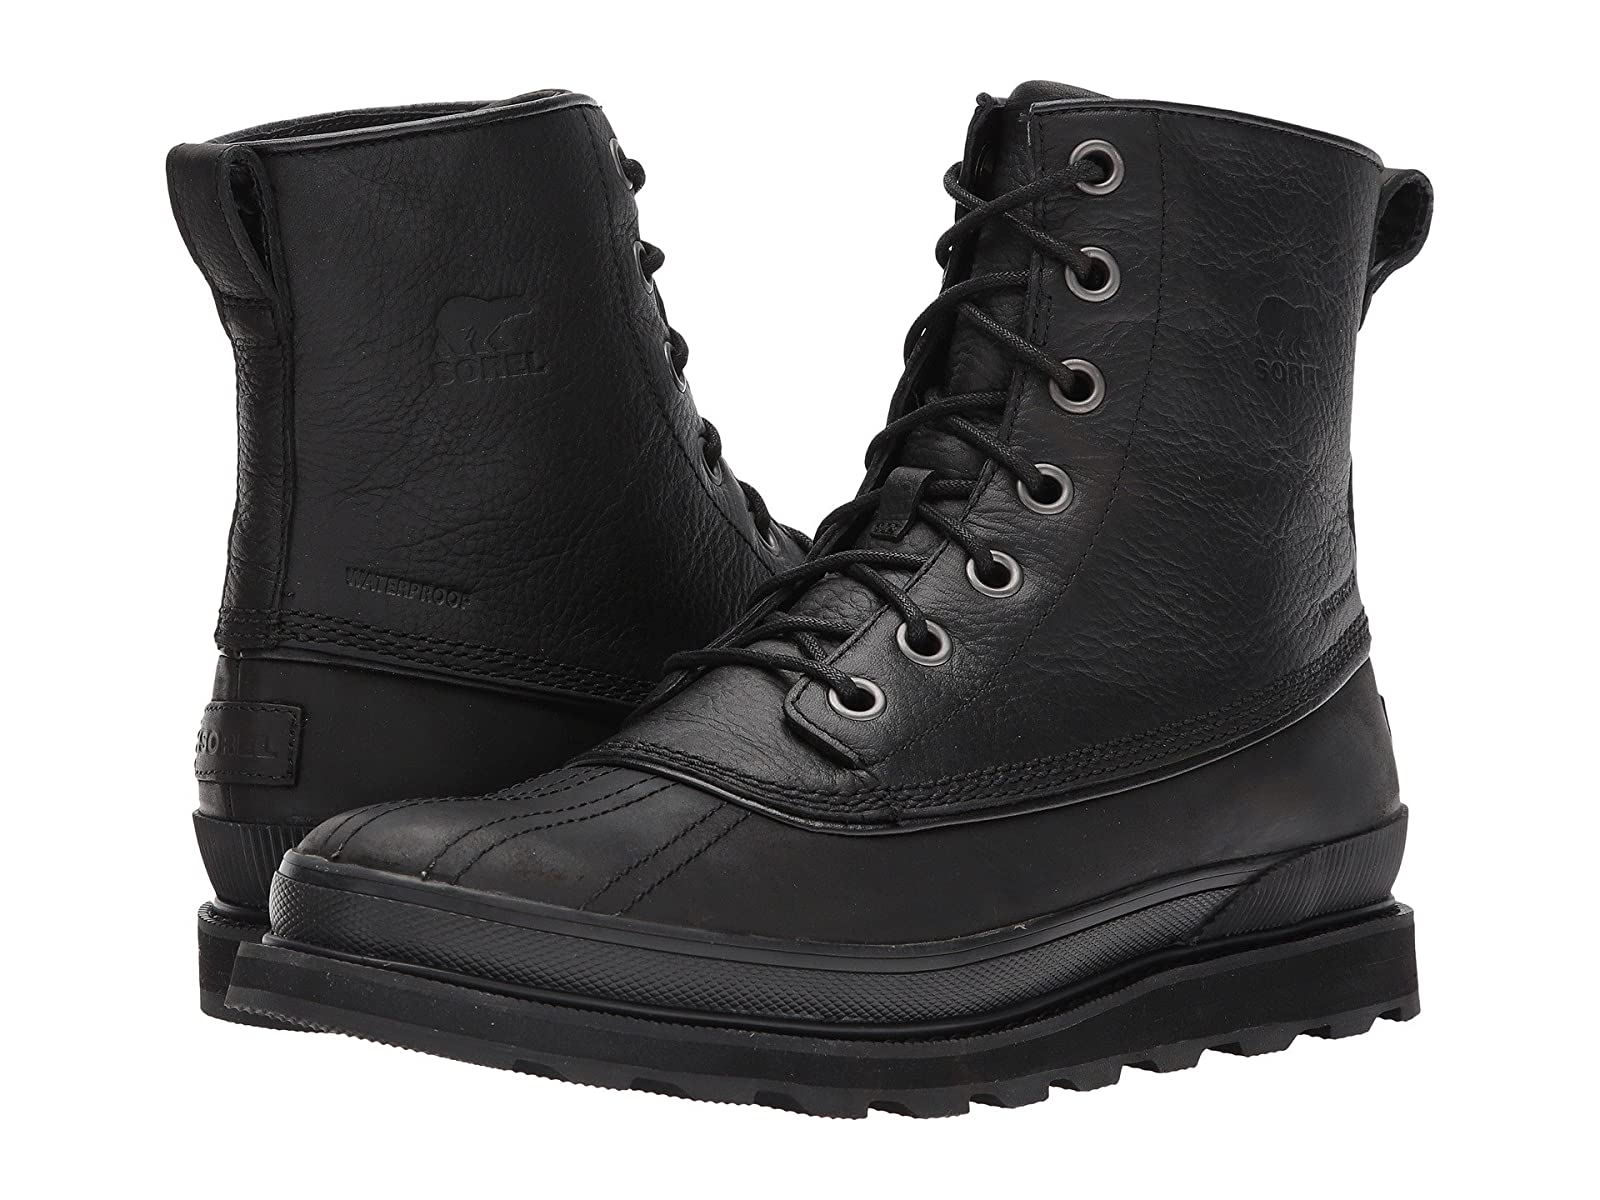 SOREL Madson 1964 WaterproofCheap and distinctive eye-catching shoes